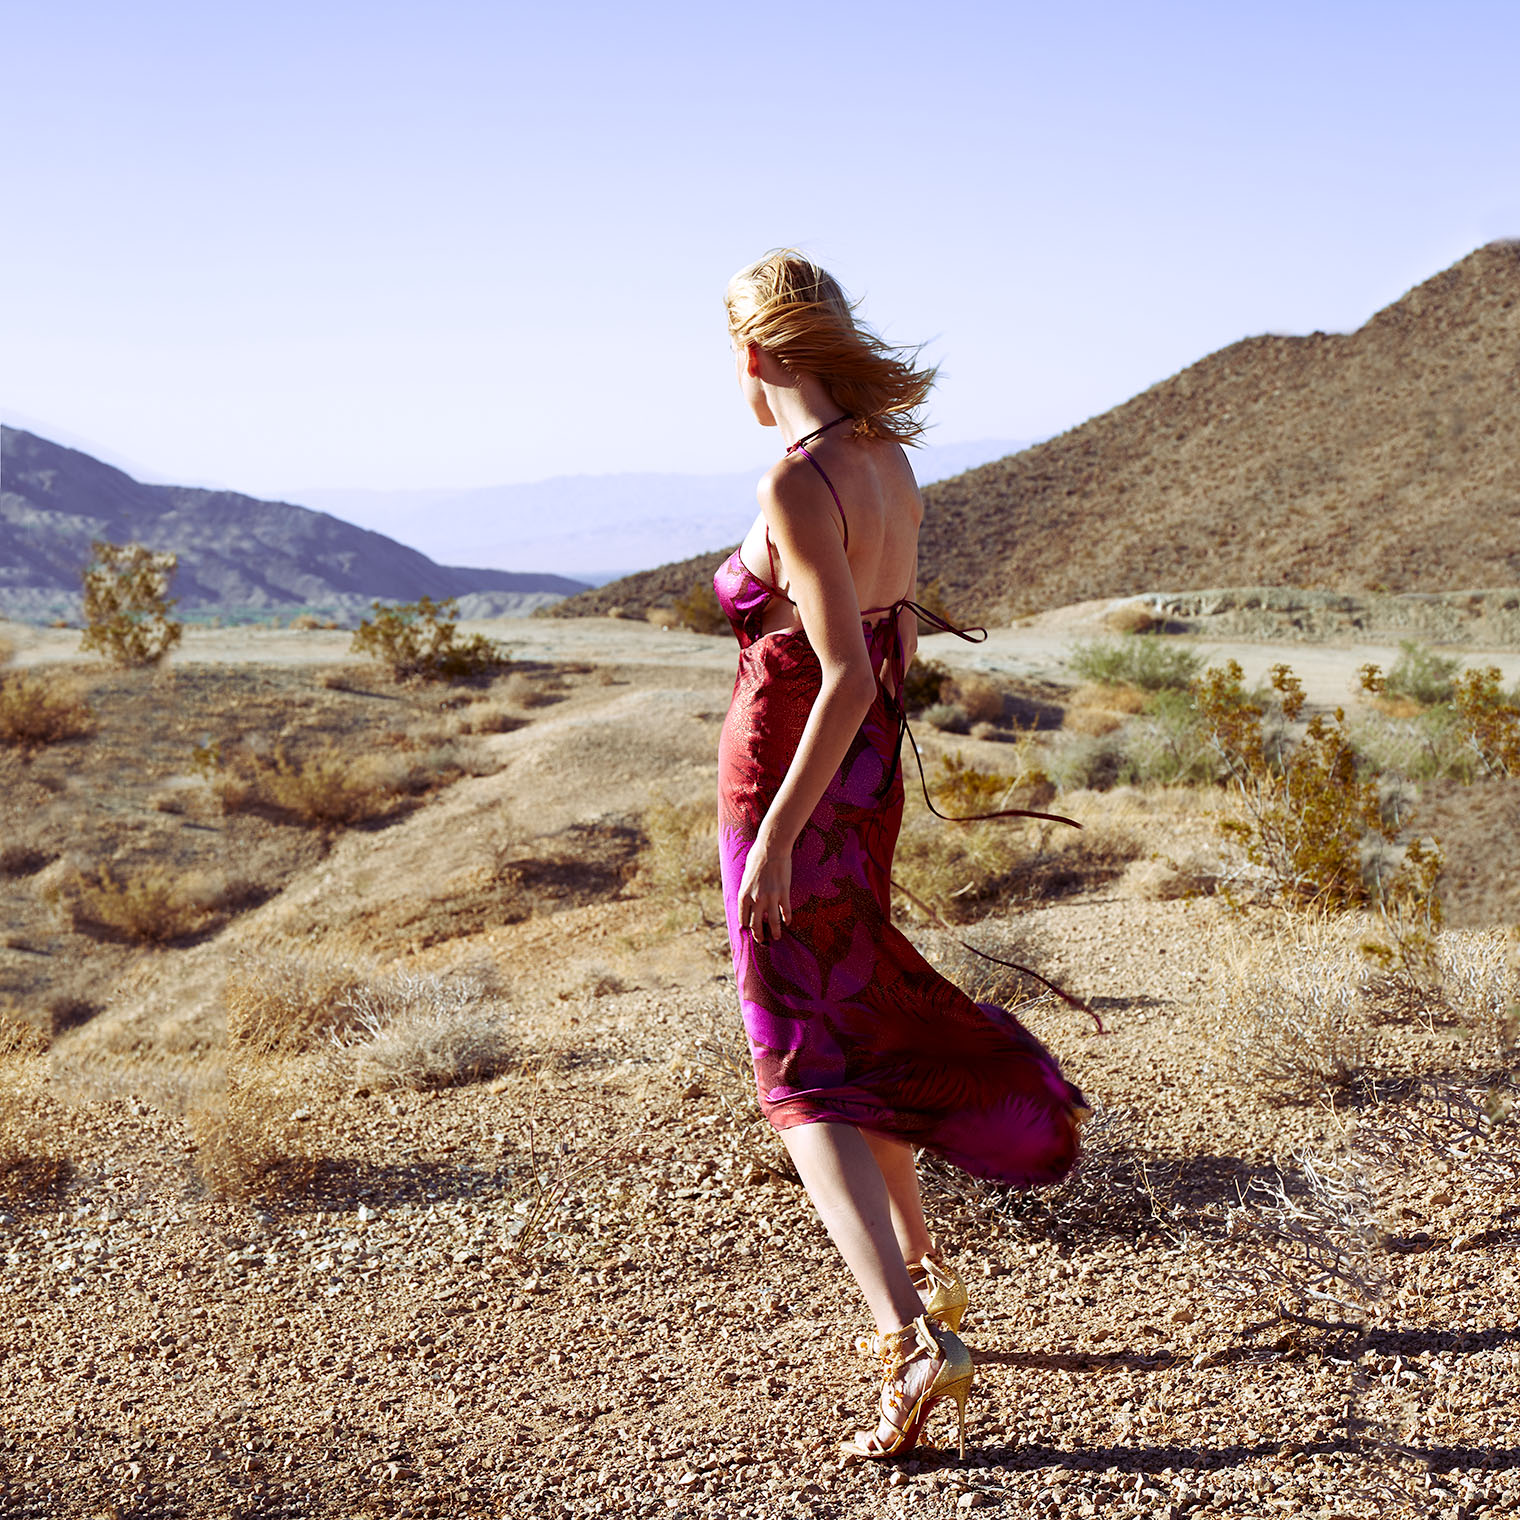 Fashion Photography in California: landscape and the infinite horizon